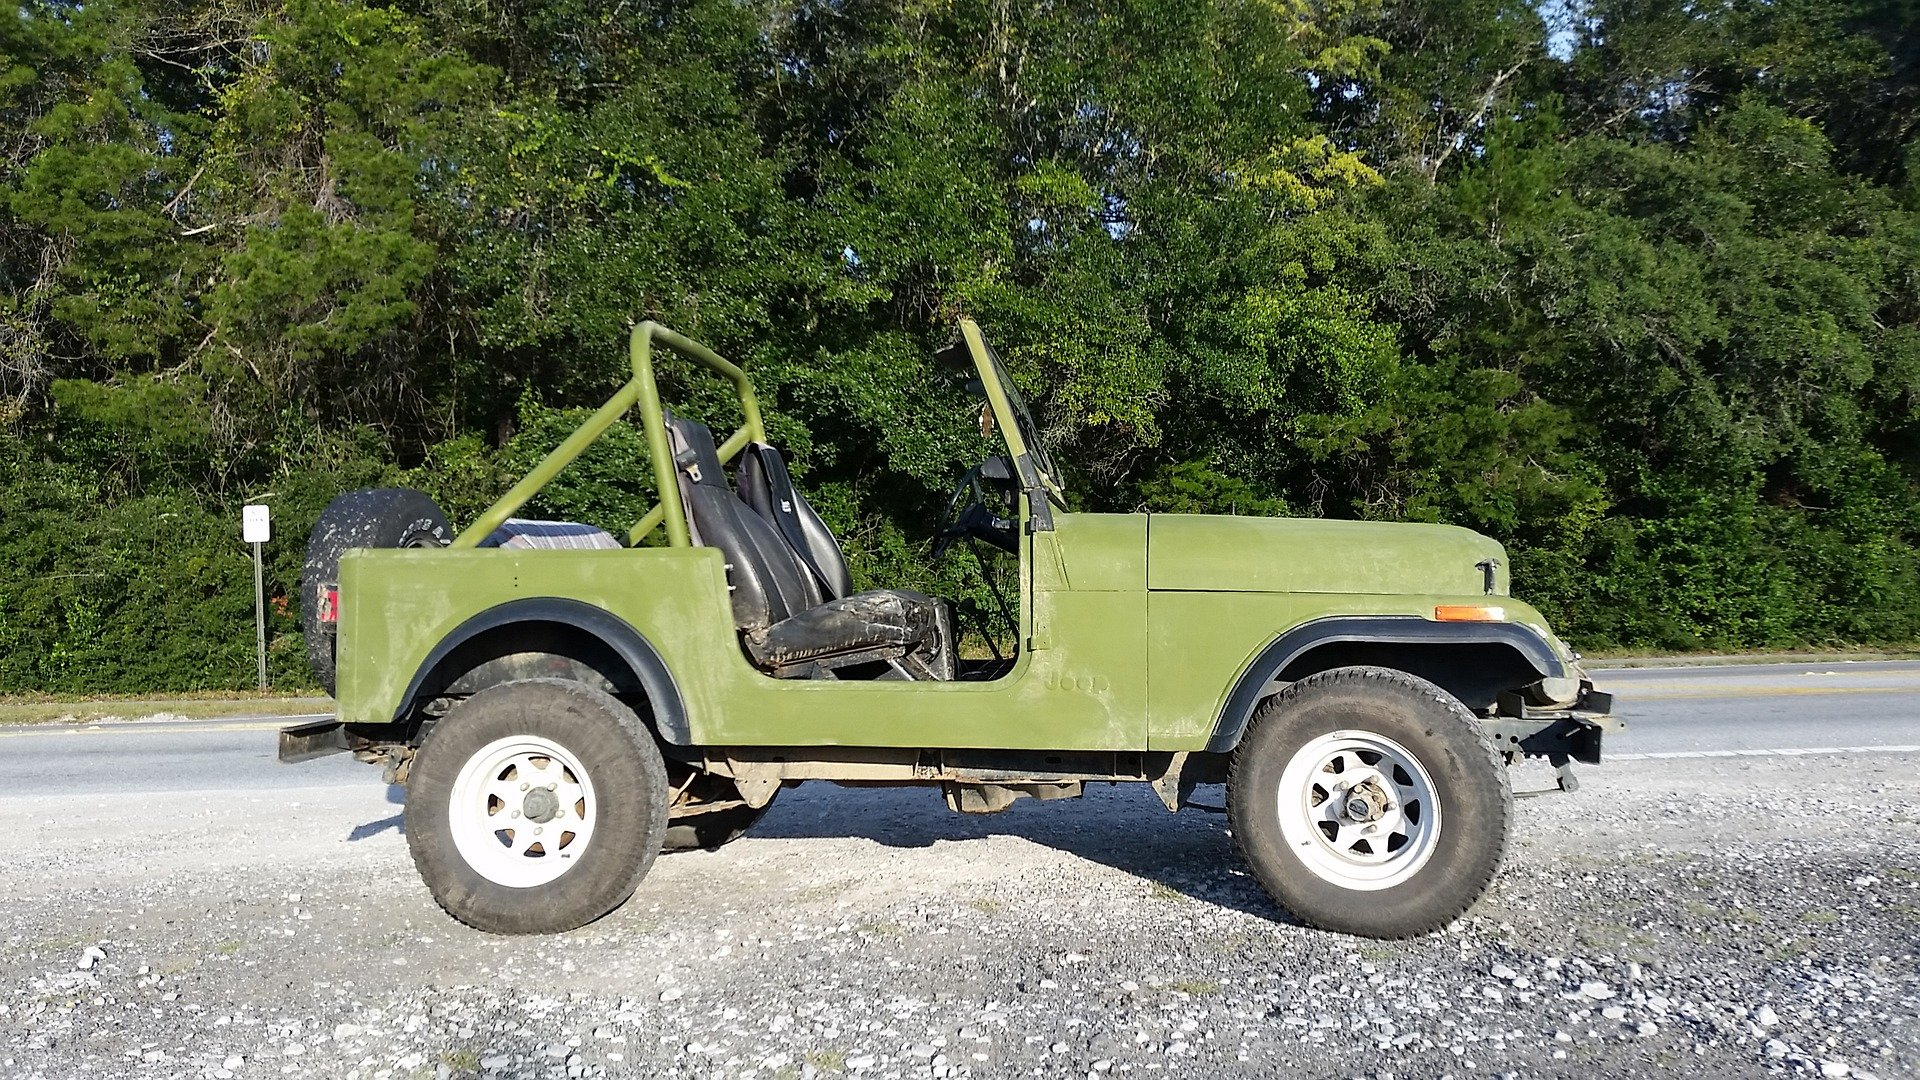 Vintage Jeep in Rancho Cucamonga California - VeteranCarDonations.org